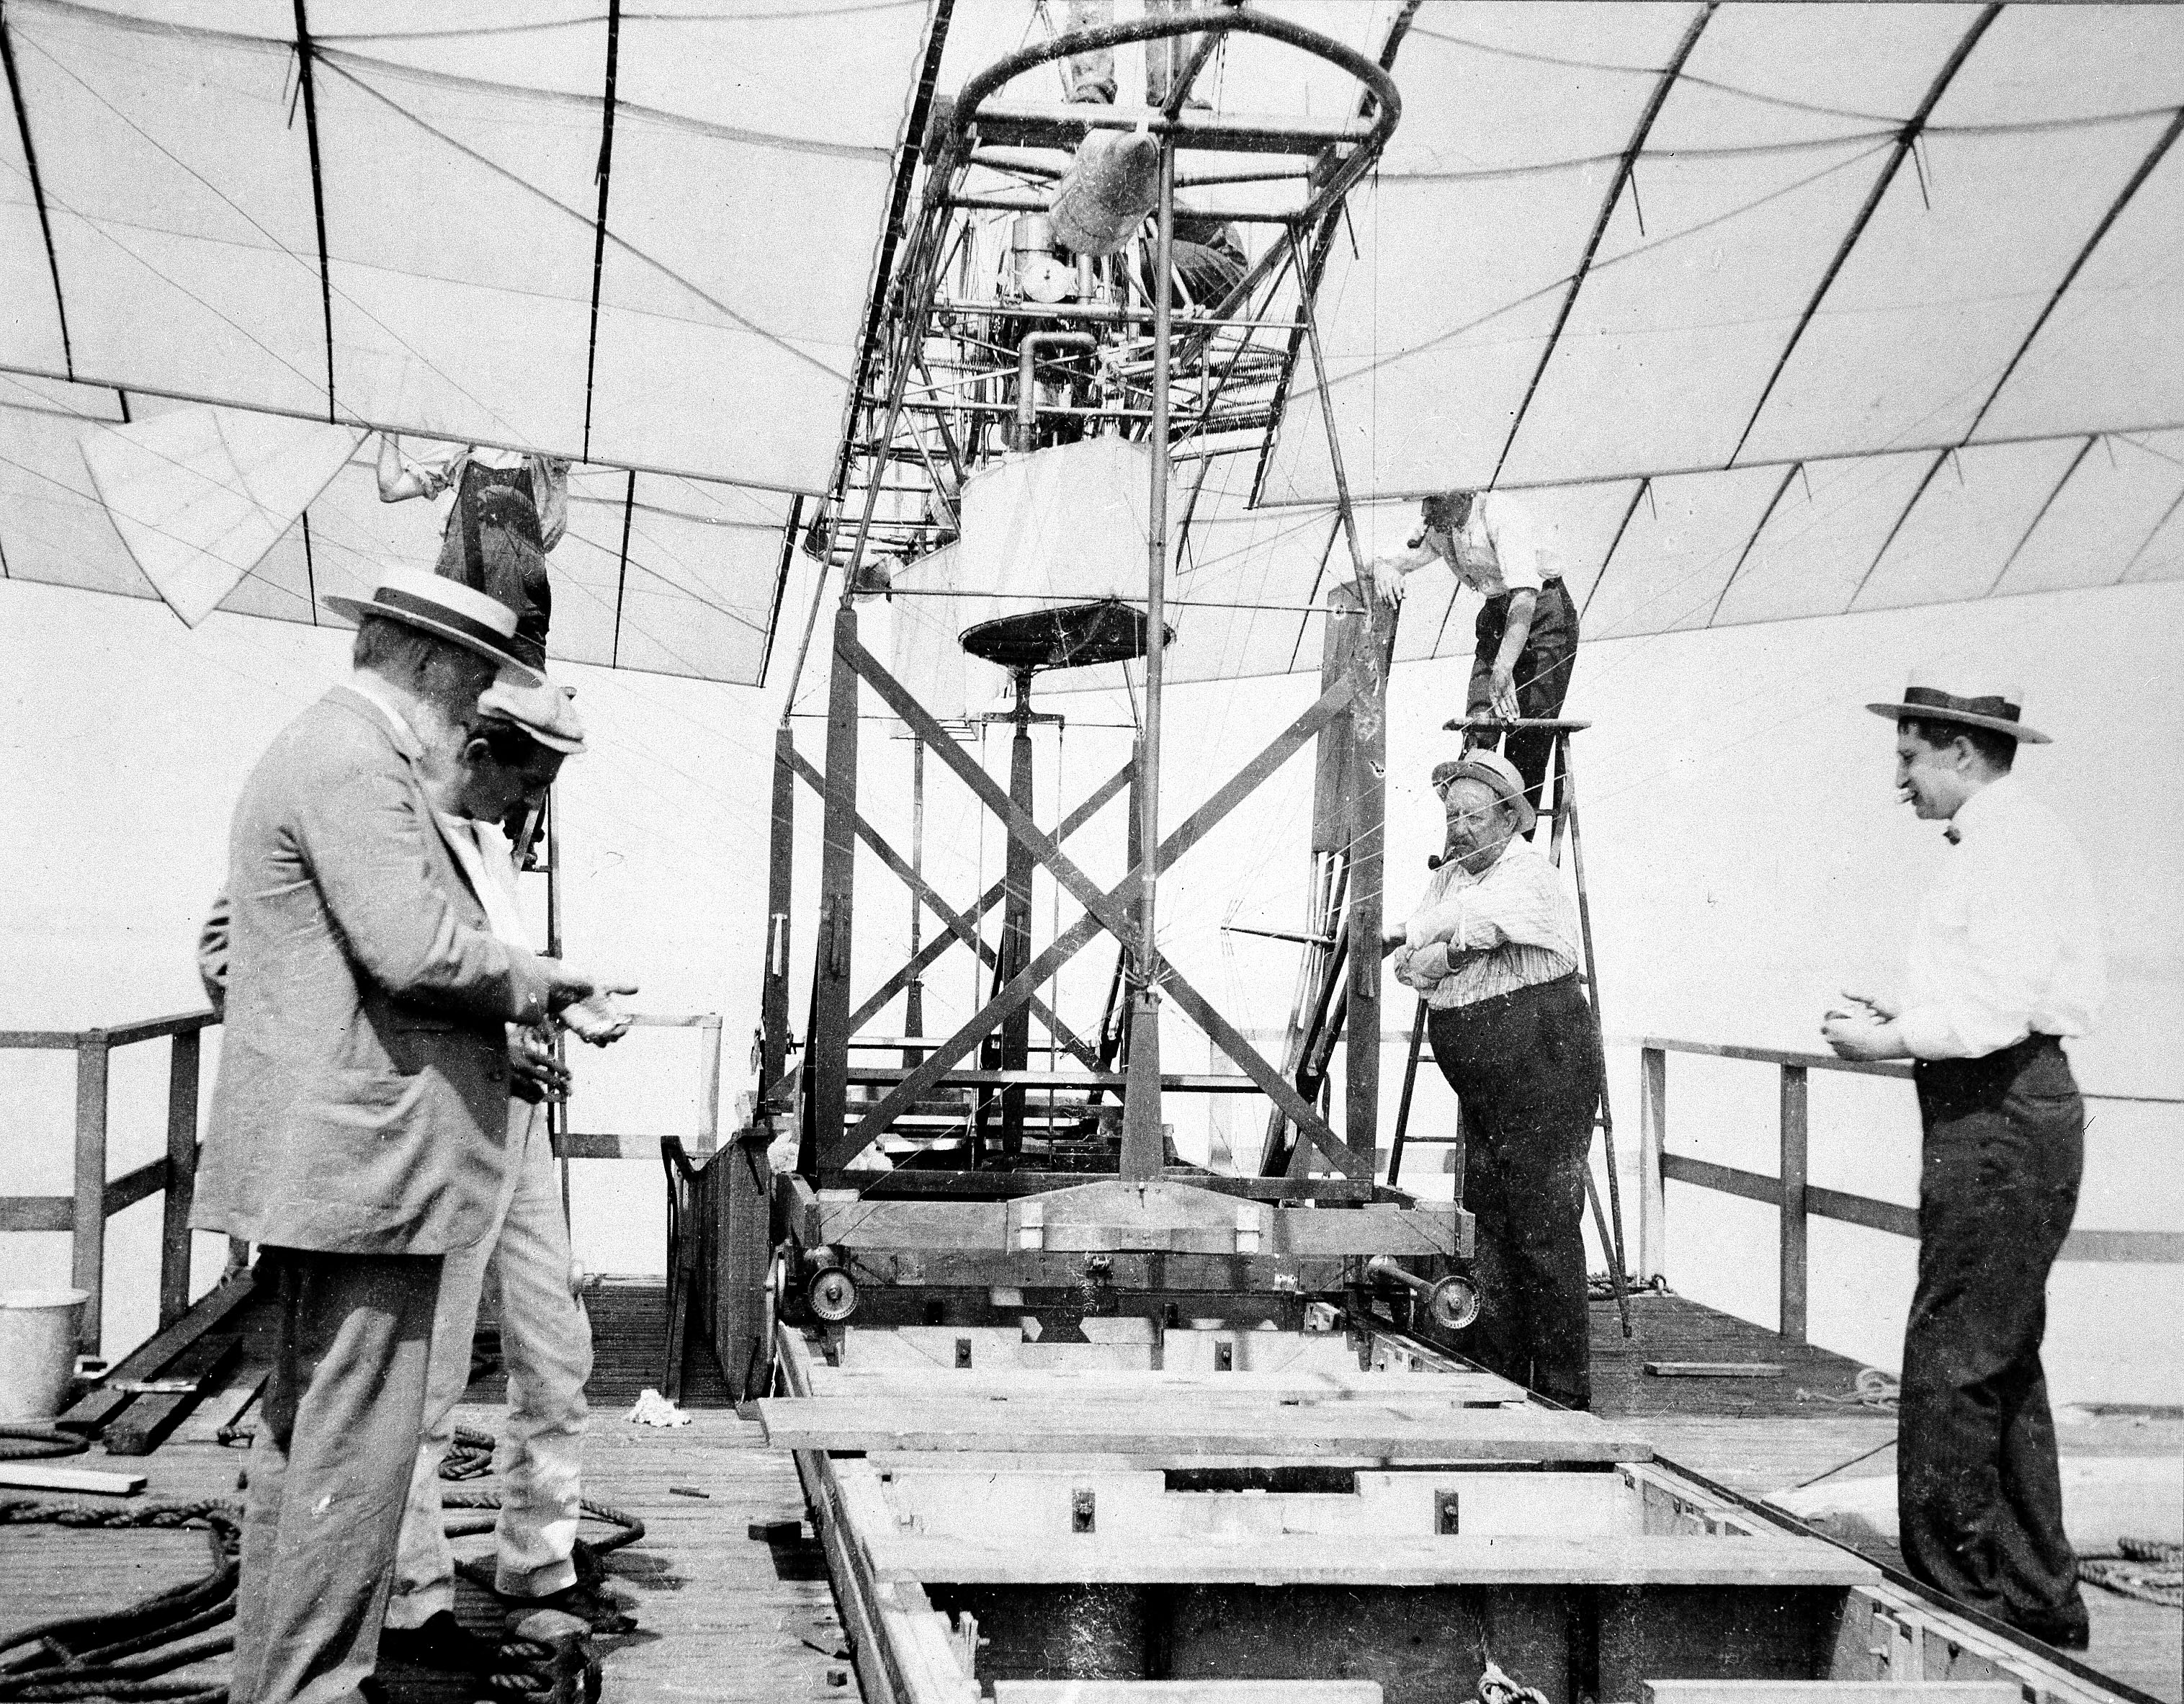 Langley with His Aerodrome.